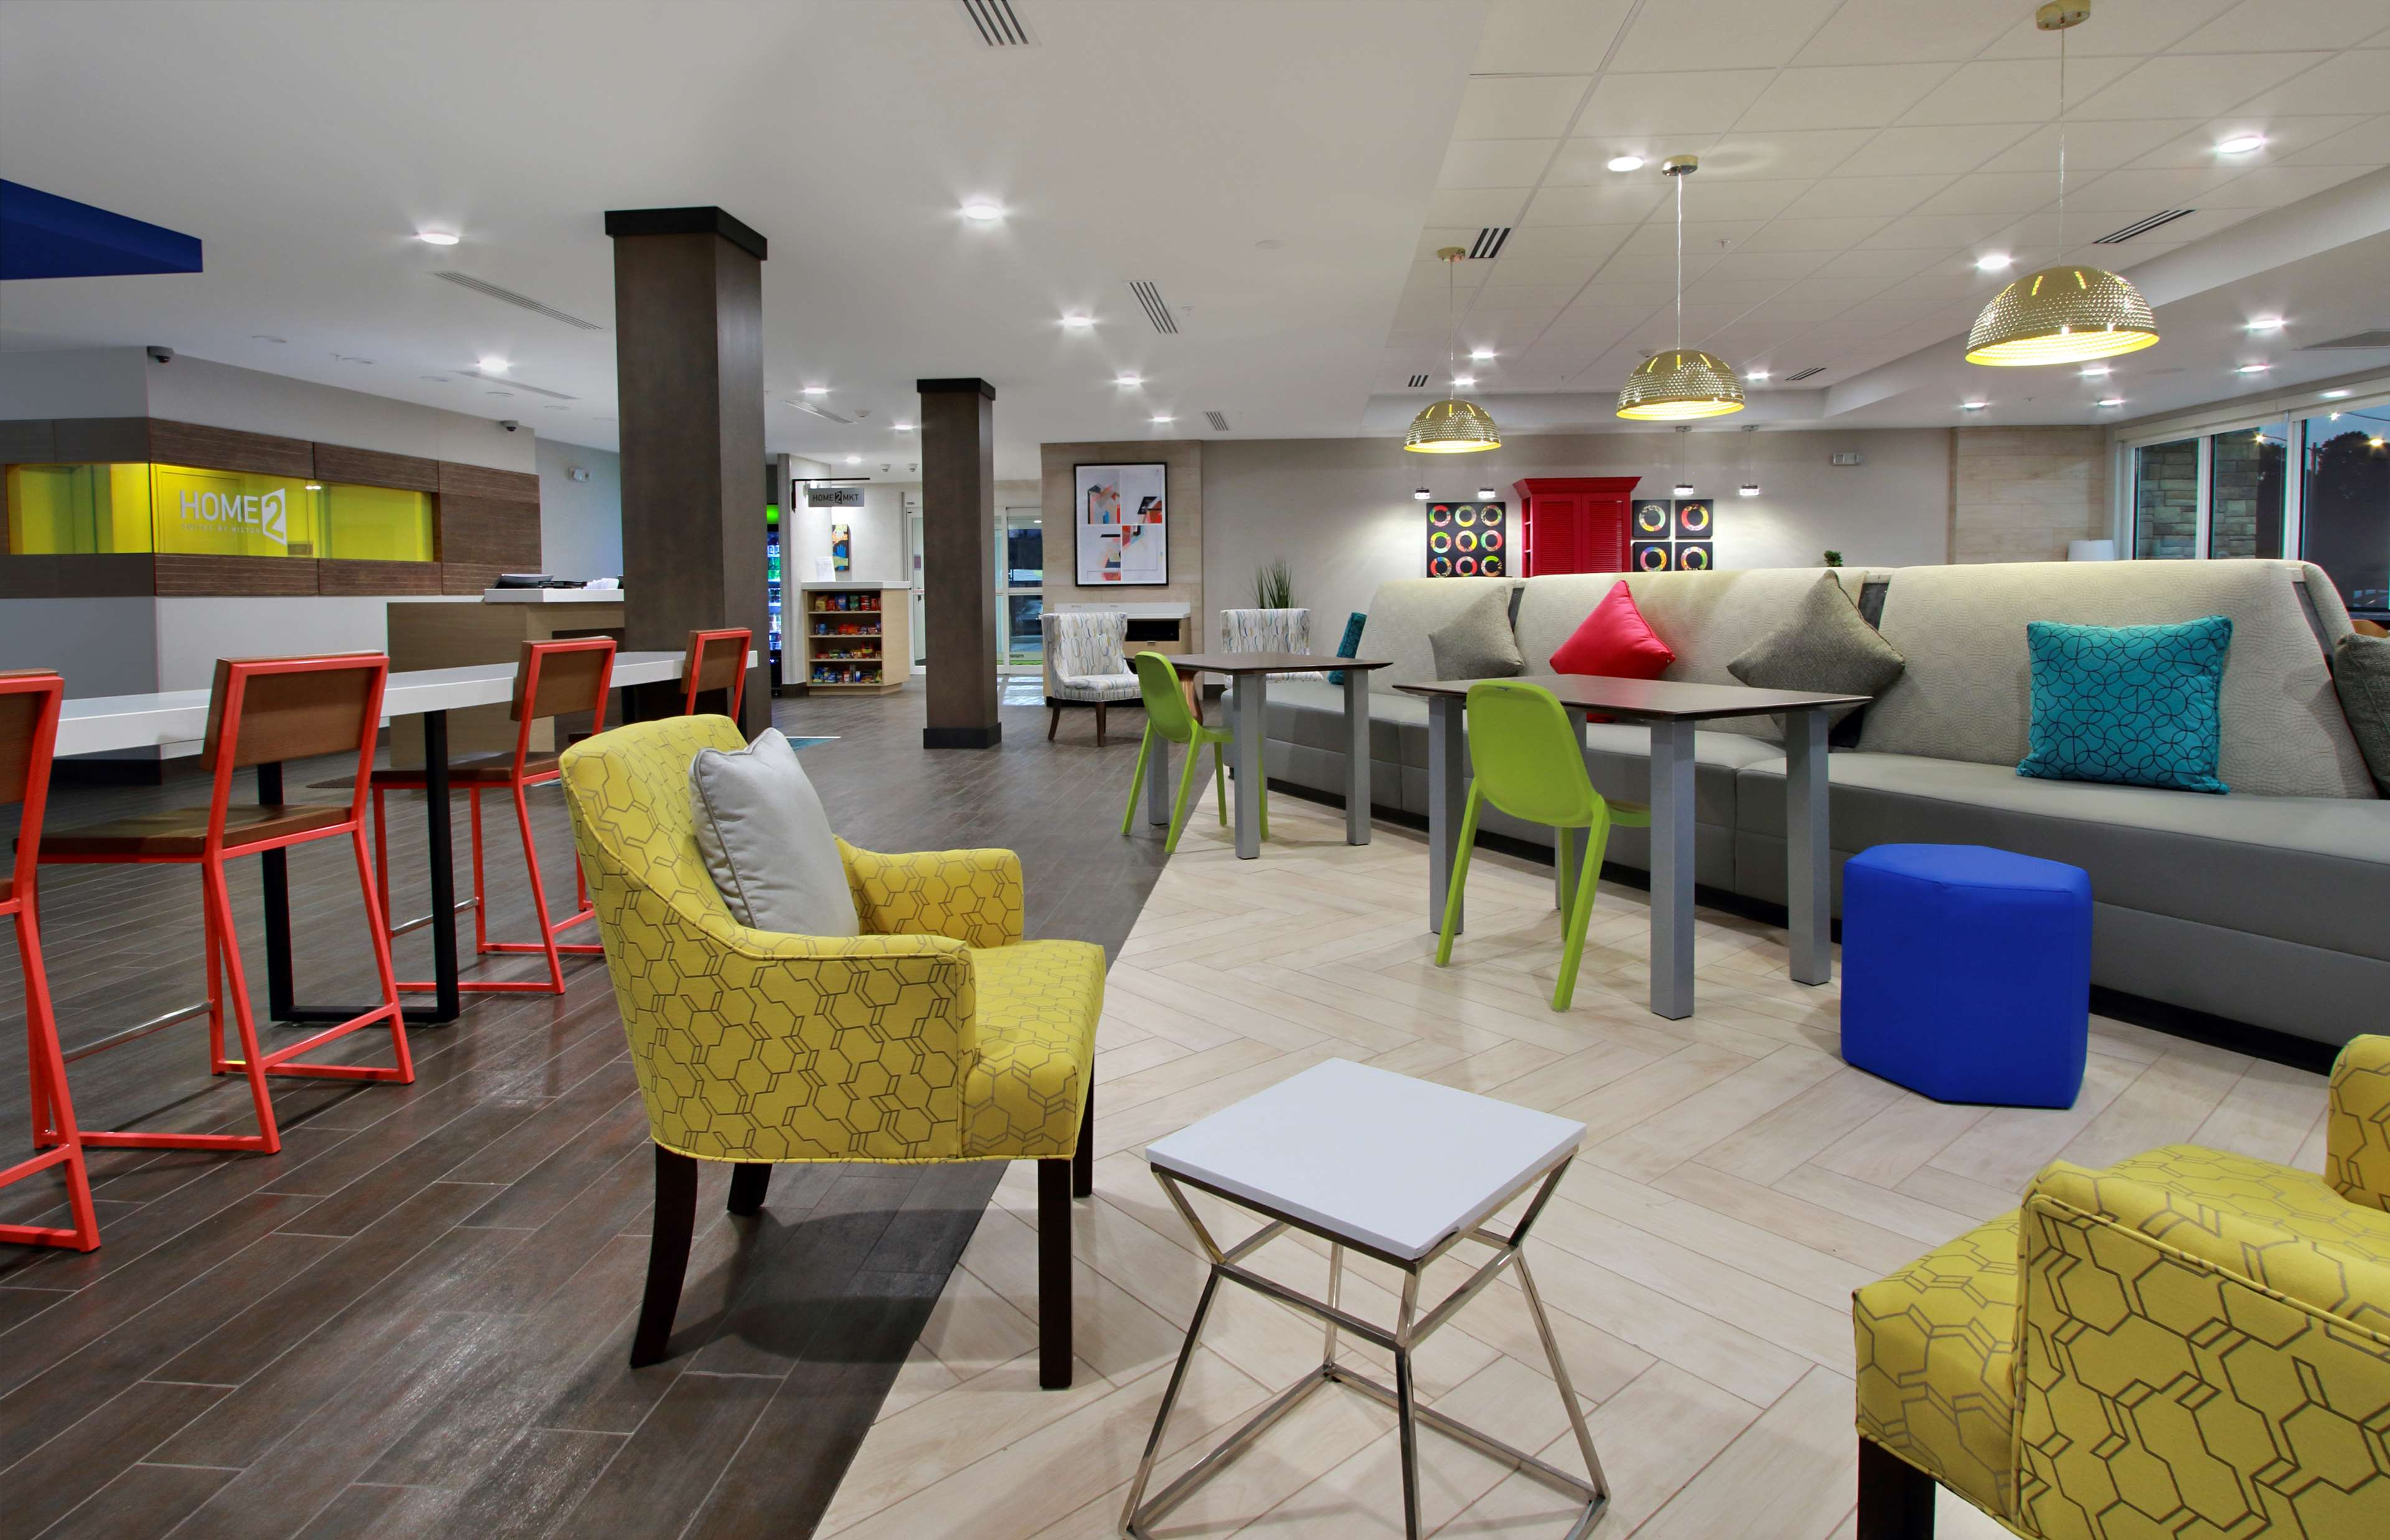 Home2 Suites by Hilton Mobile I-65 Government Boulevard image 6